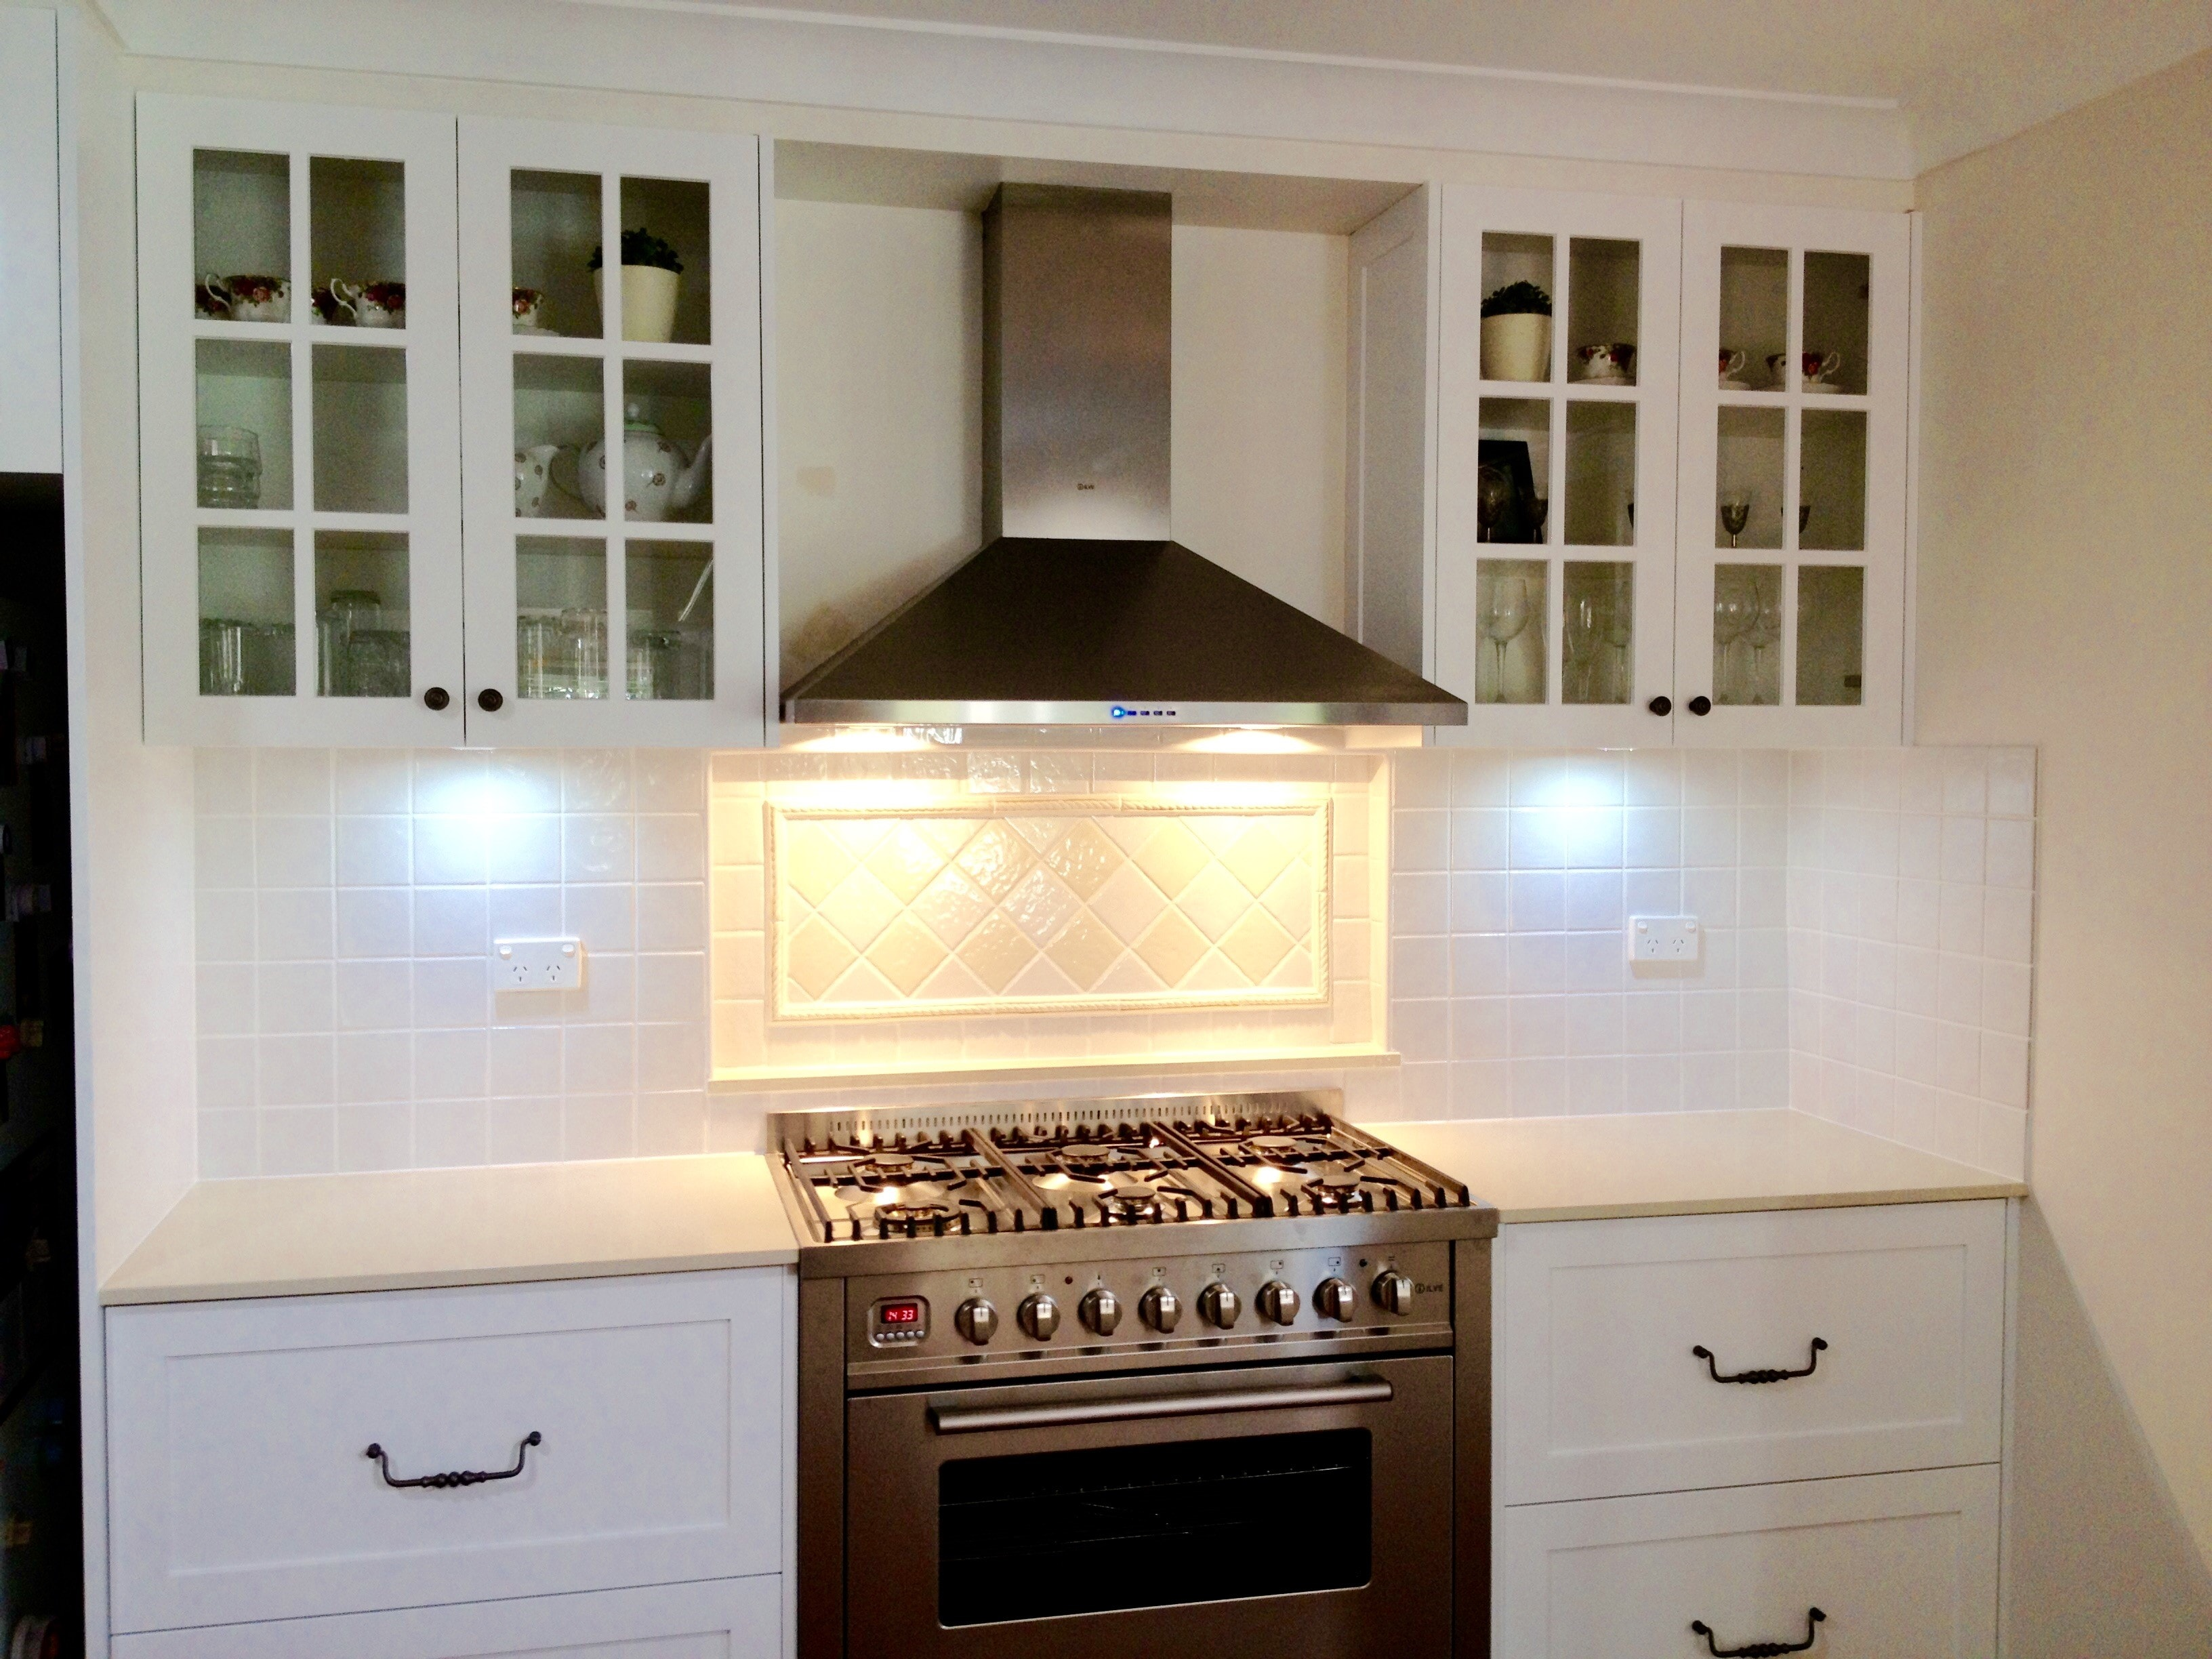 Master Bathrooms Kitchens On Castle Hill Nsw 2154